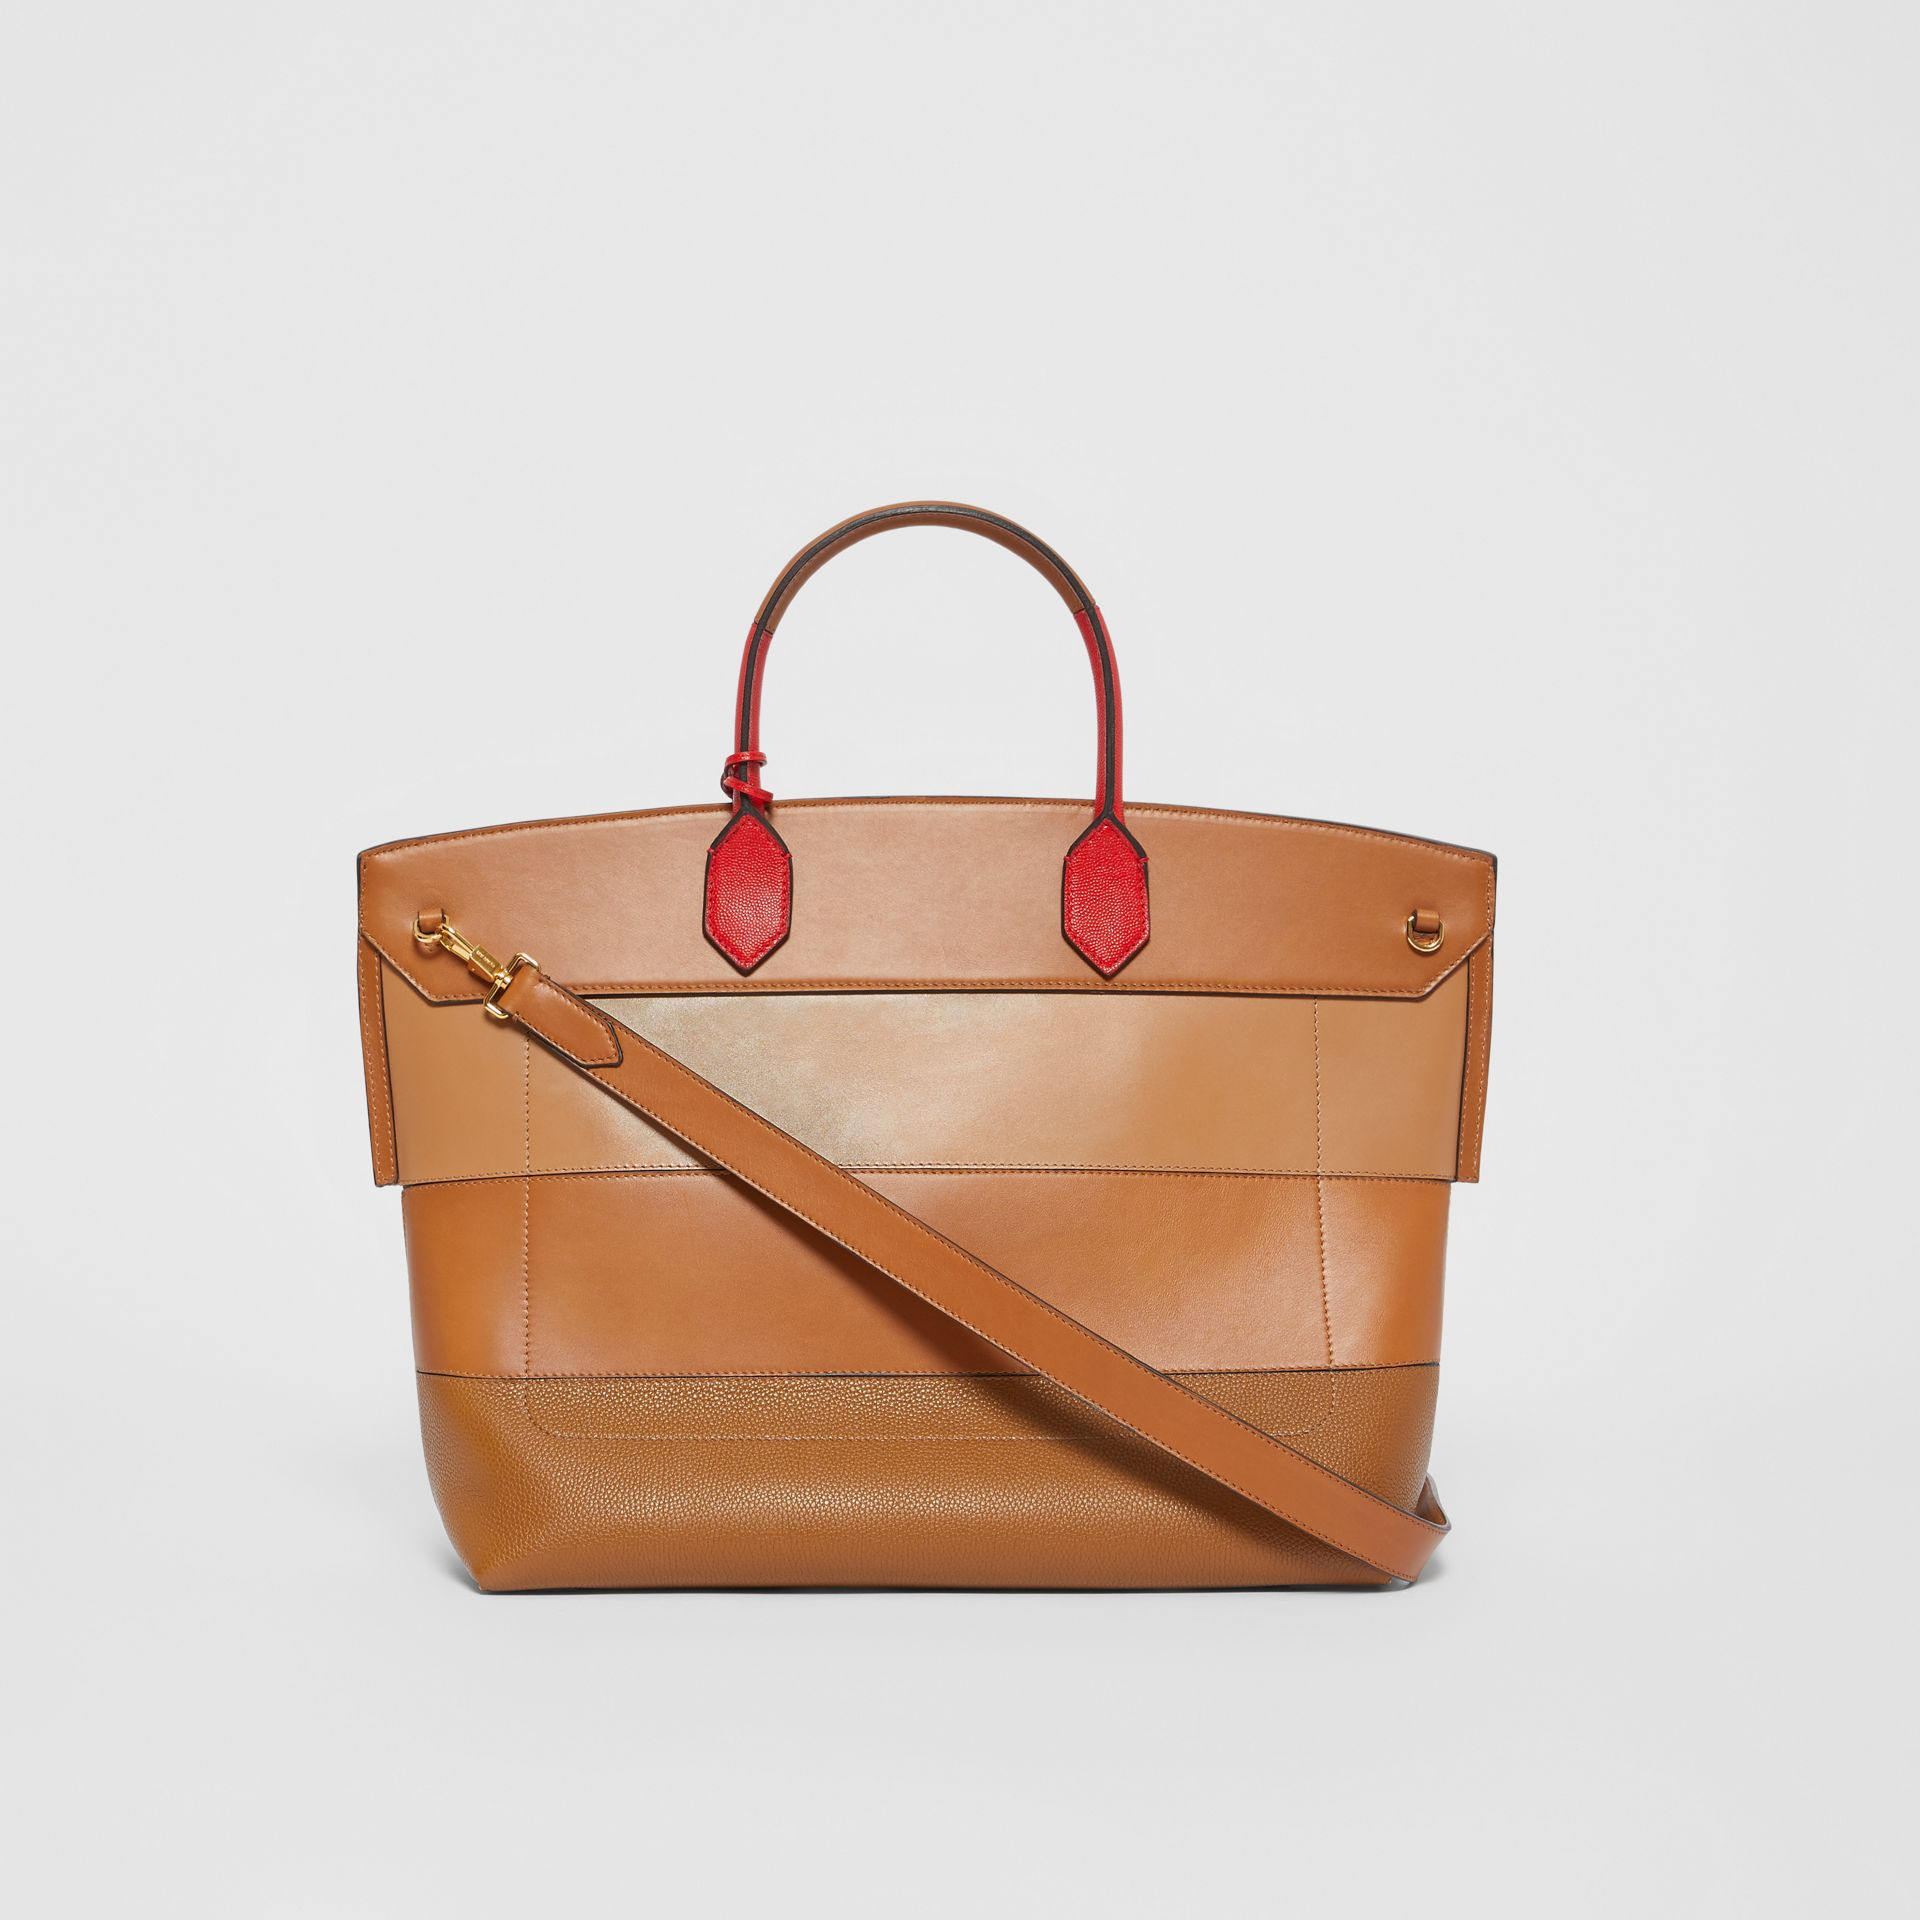 Panelled Leather Society Top Handle Bag in Warm Camel - Women | Burberry - gallery image 7